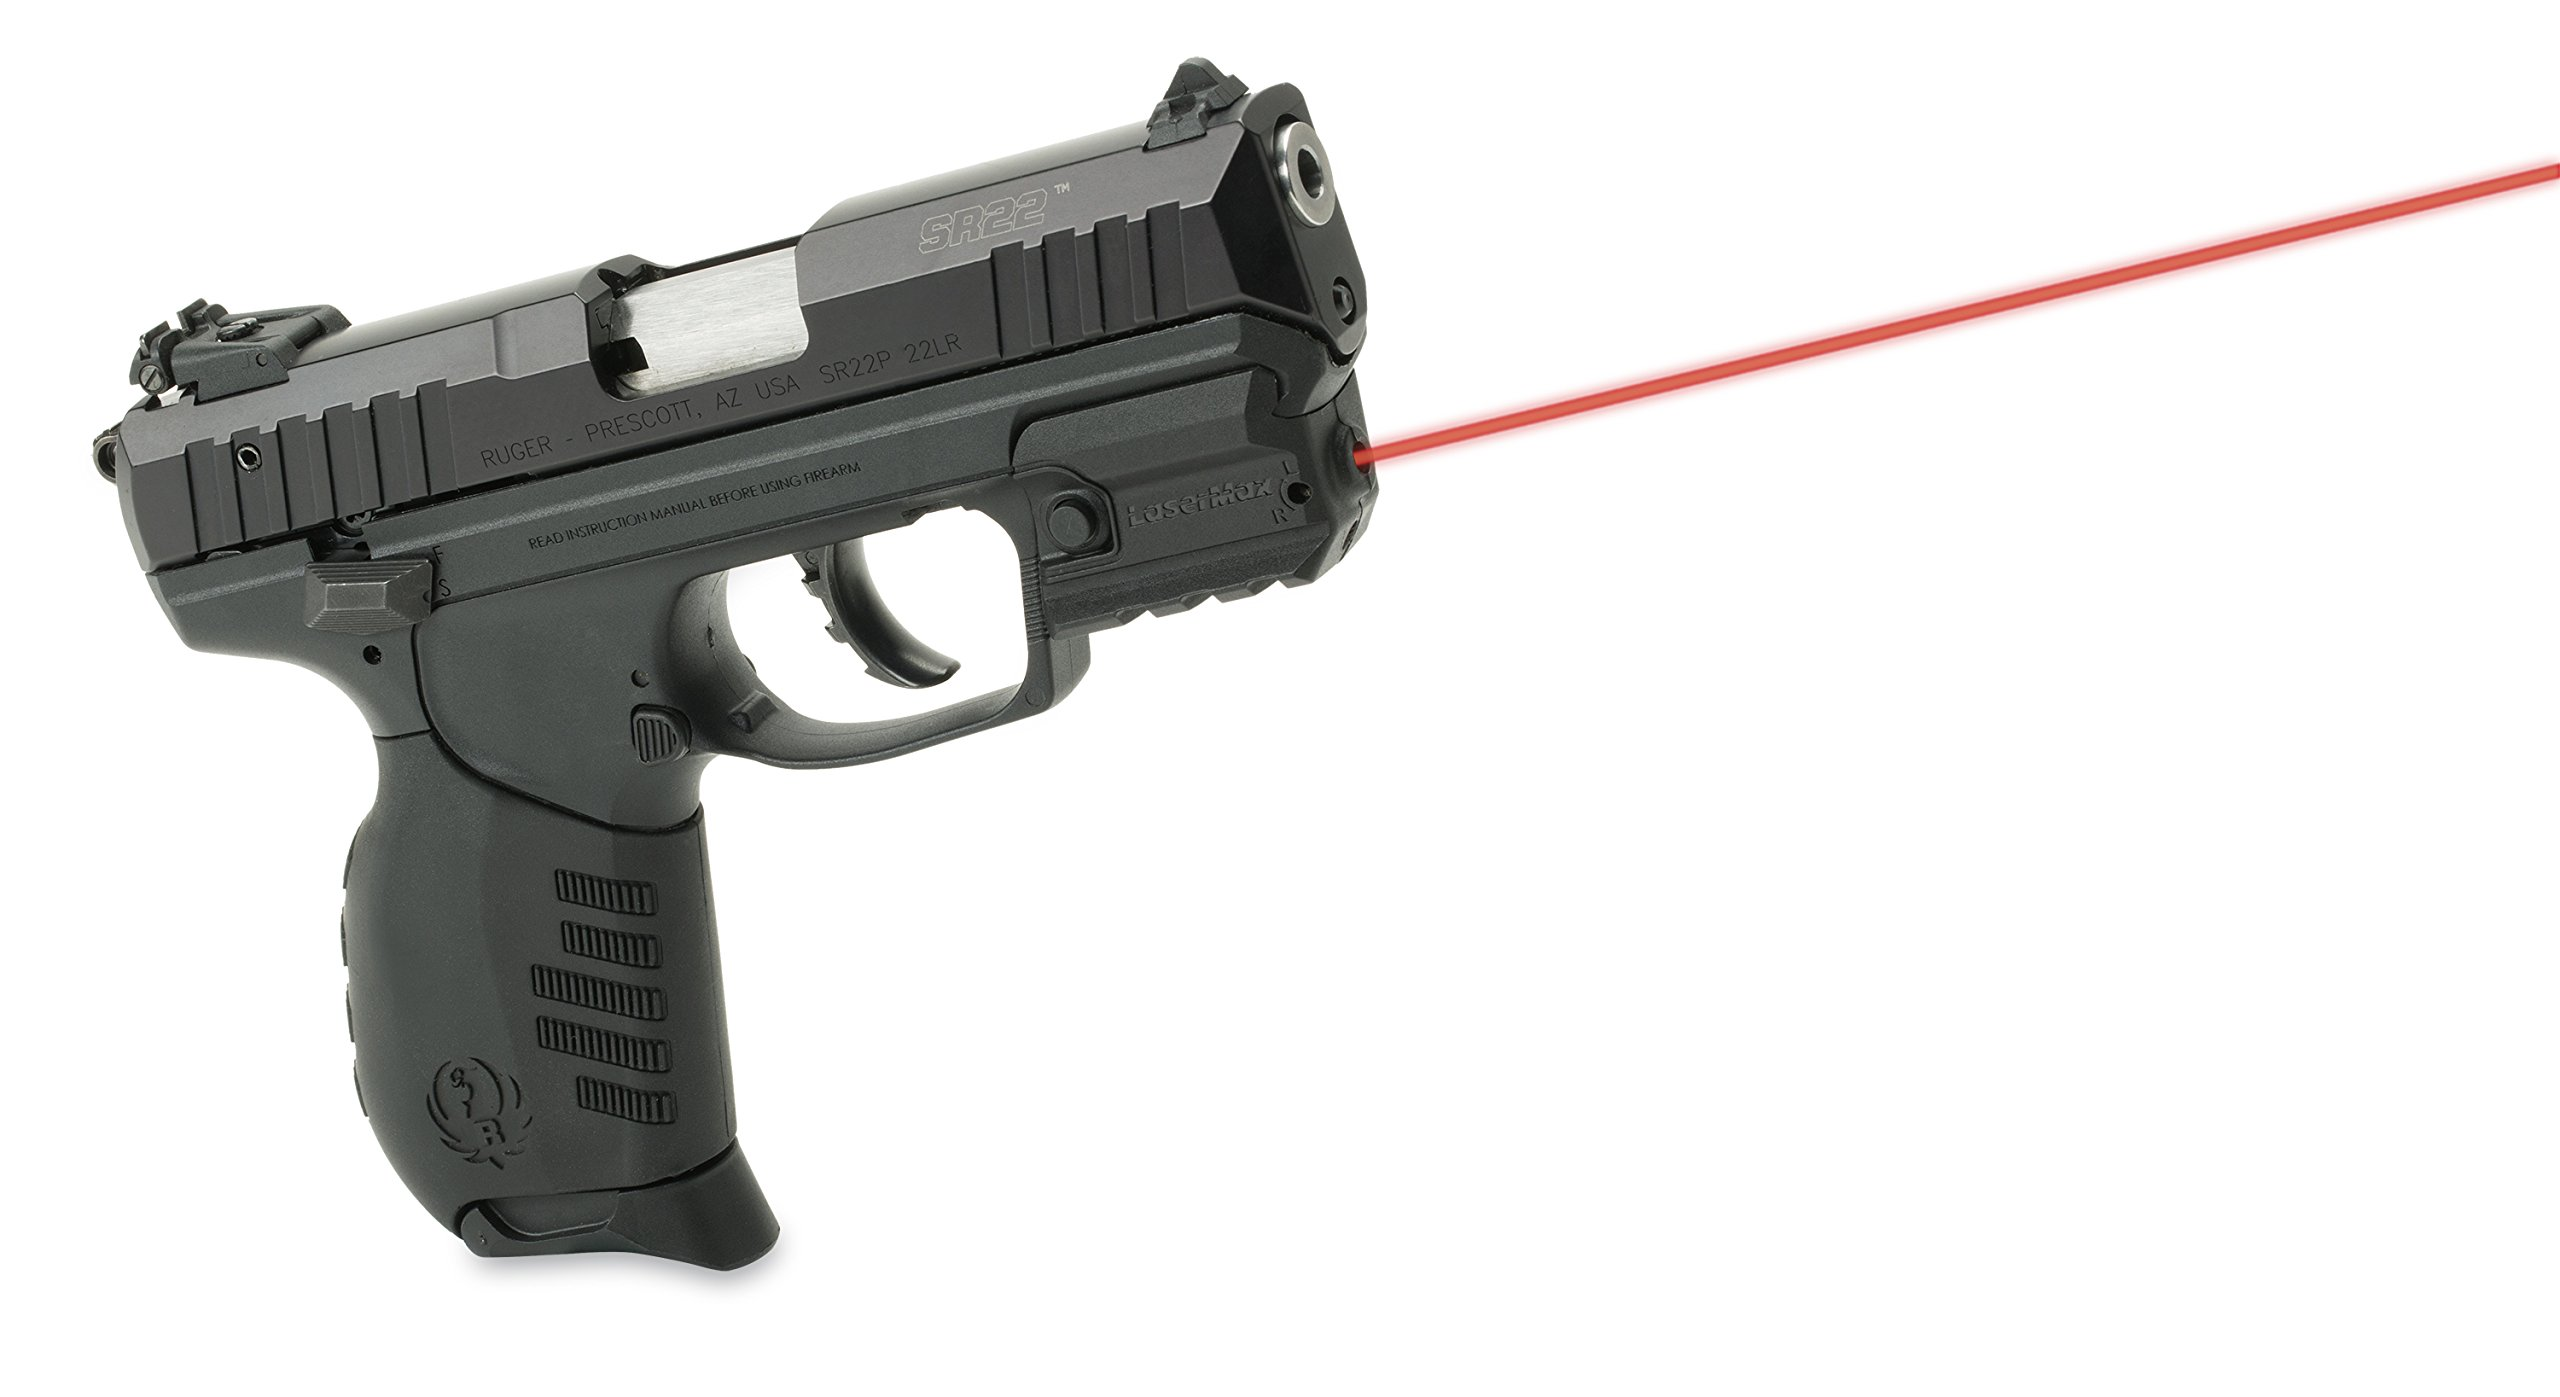 Laser Max LMS-RMSR Rail Mounted Laser (Red) For Ruger SR Series of Handguns by LaserMax (Image #6)